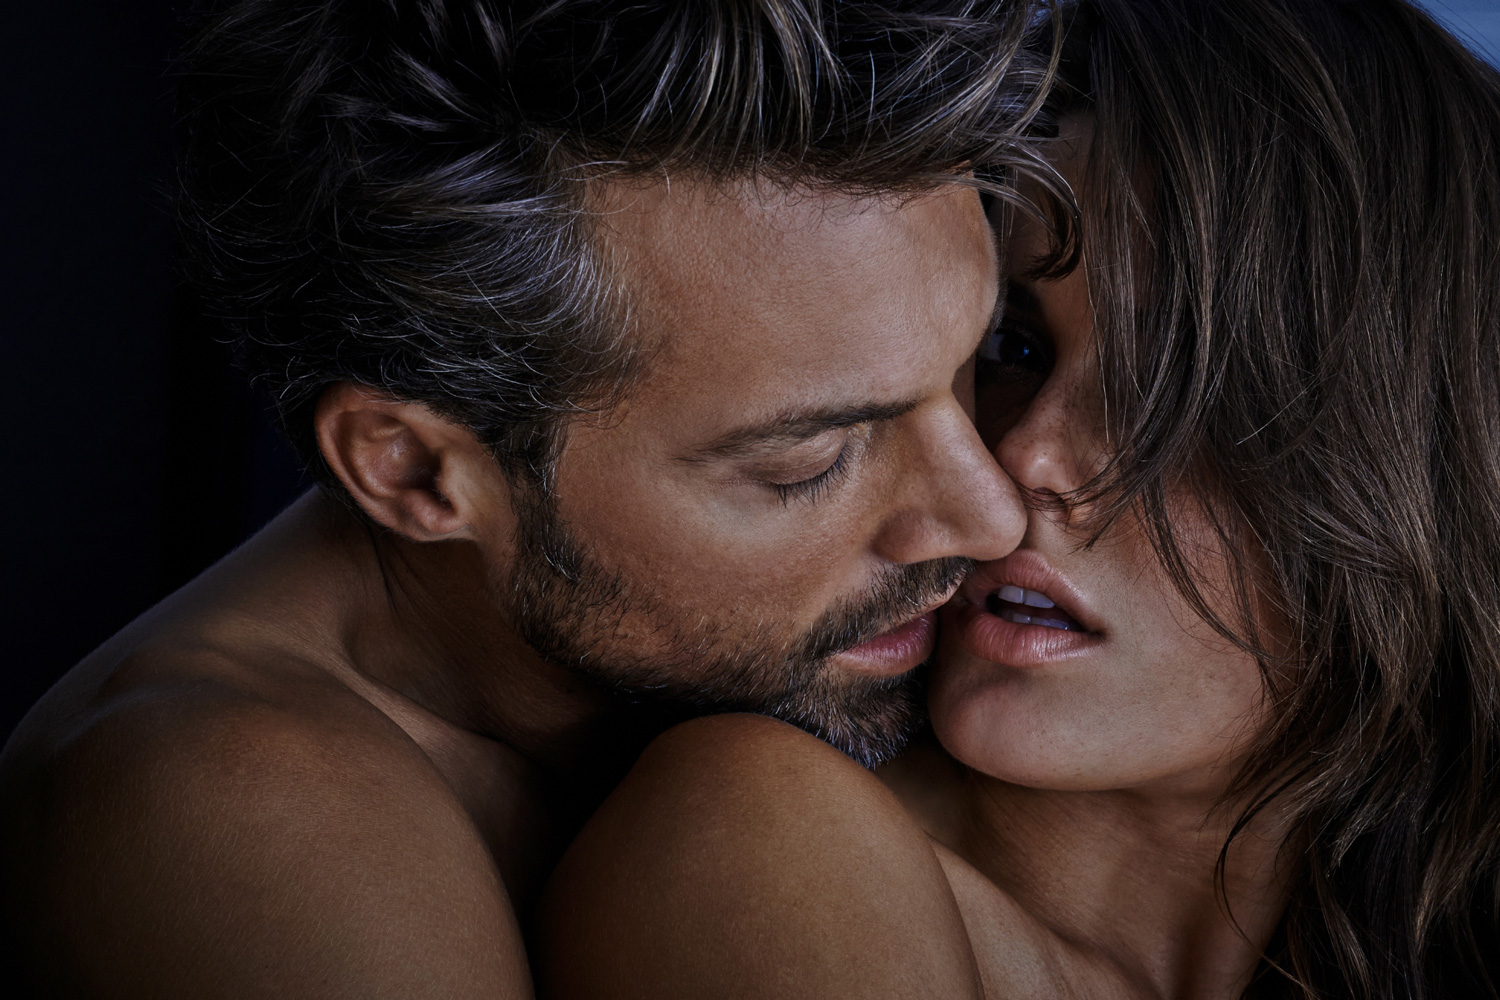 ASTRID M OBERT PHOTOGRAPHY PRESENTS - PASSION